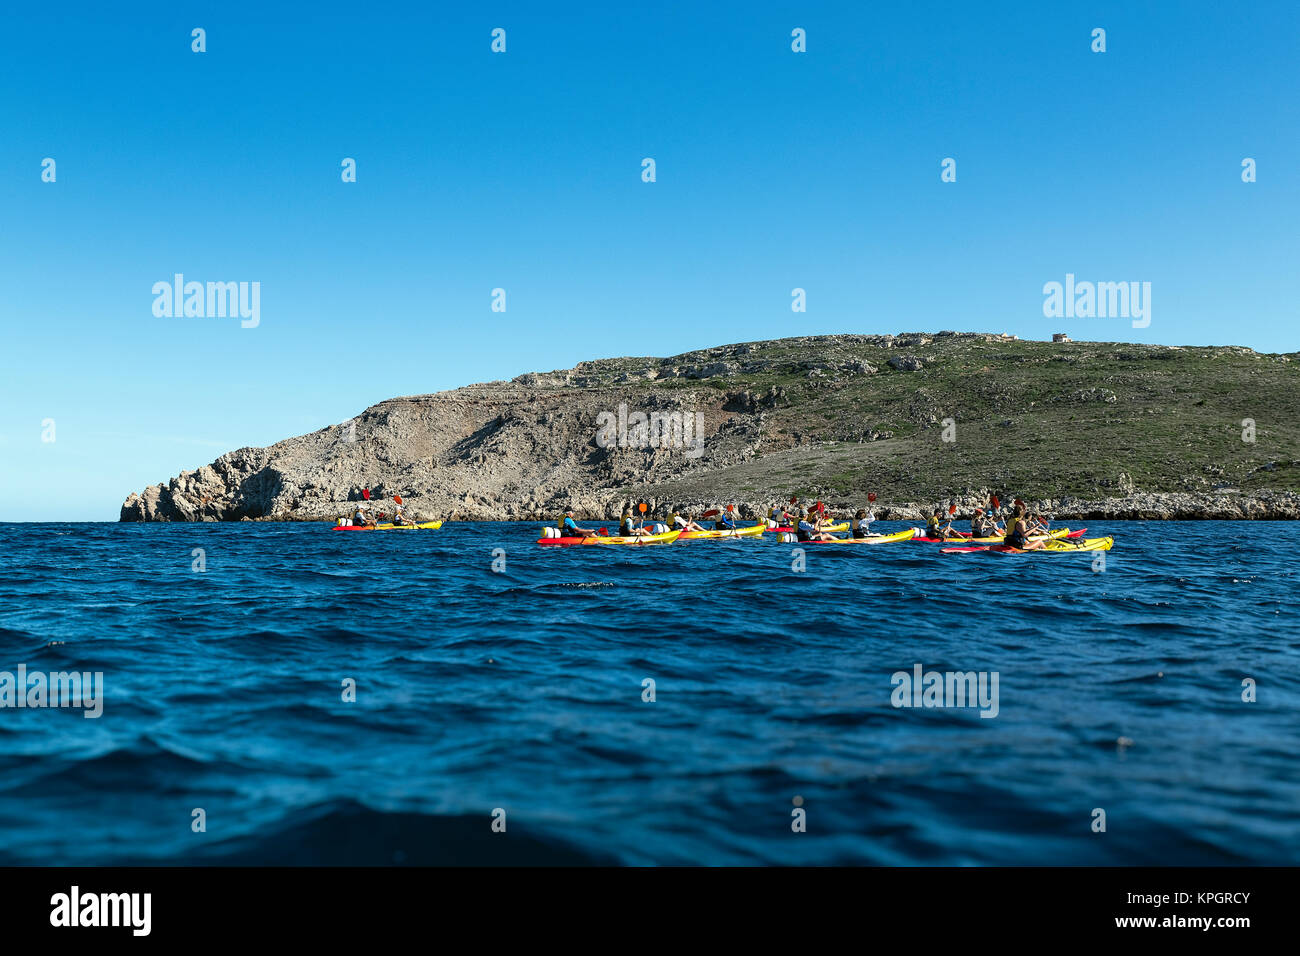 Kyak adventure tour, Fornells, Menorca, Balearic islands, Spain. - Stock Image